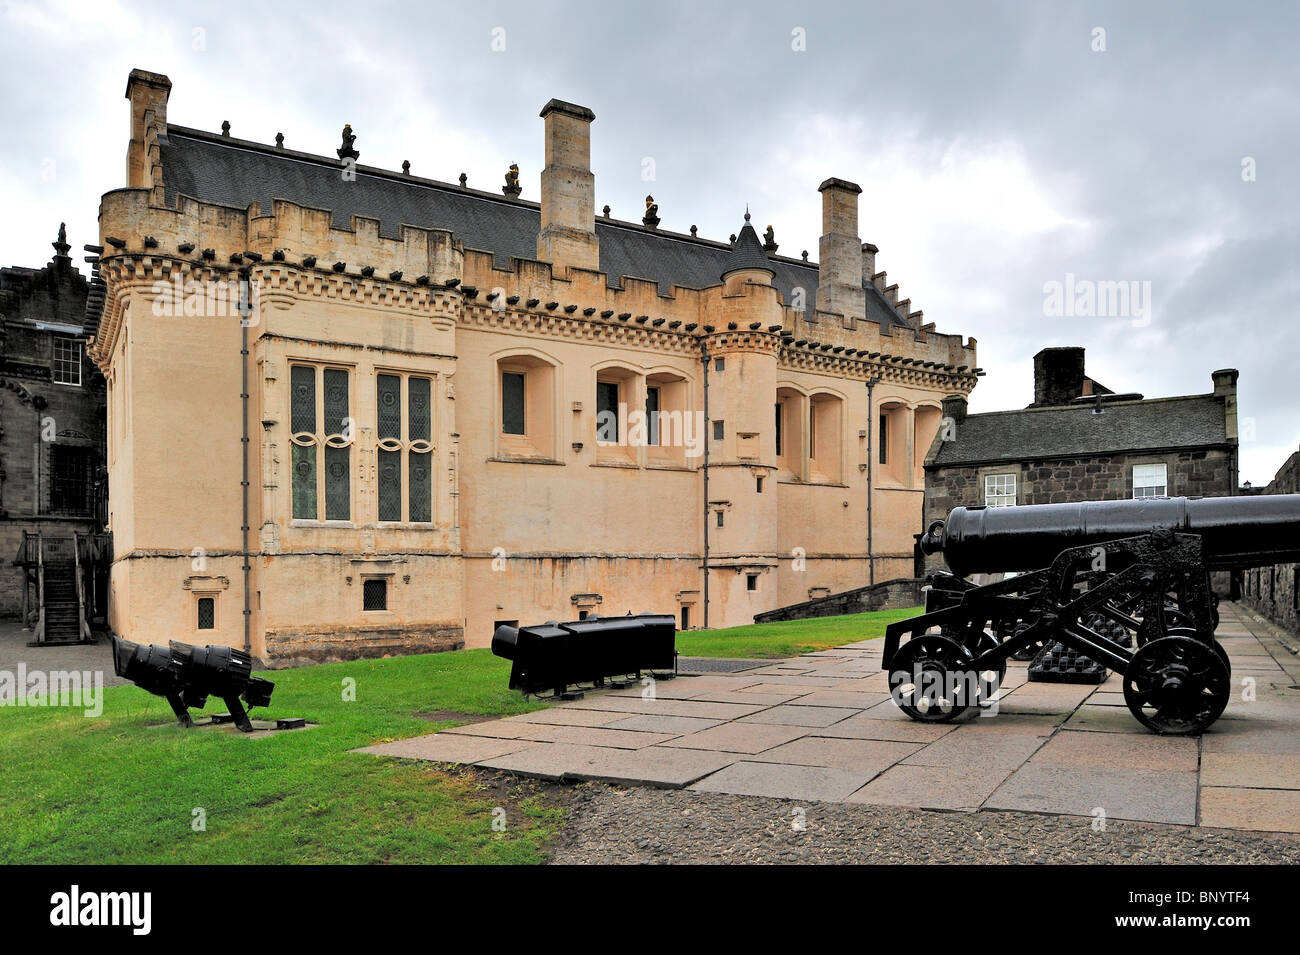 The James IV's Great Hall and cannons at Stirling Castle, Scotland, UK - Stock Image